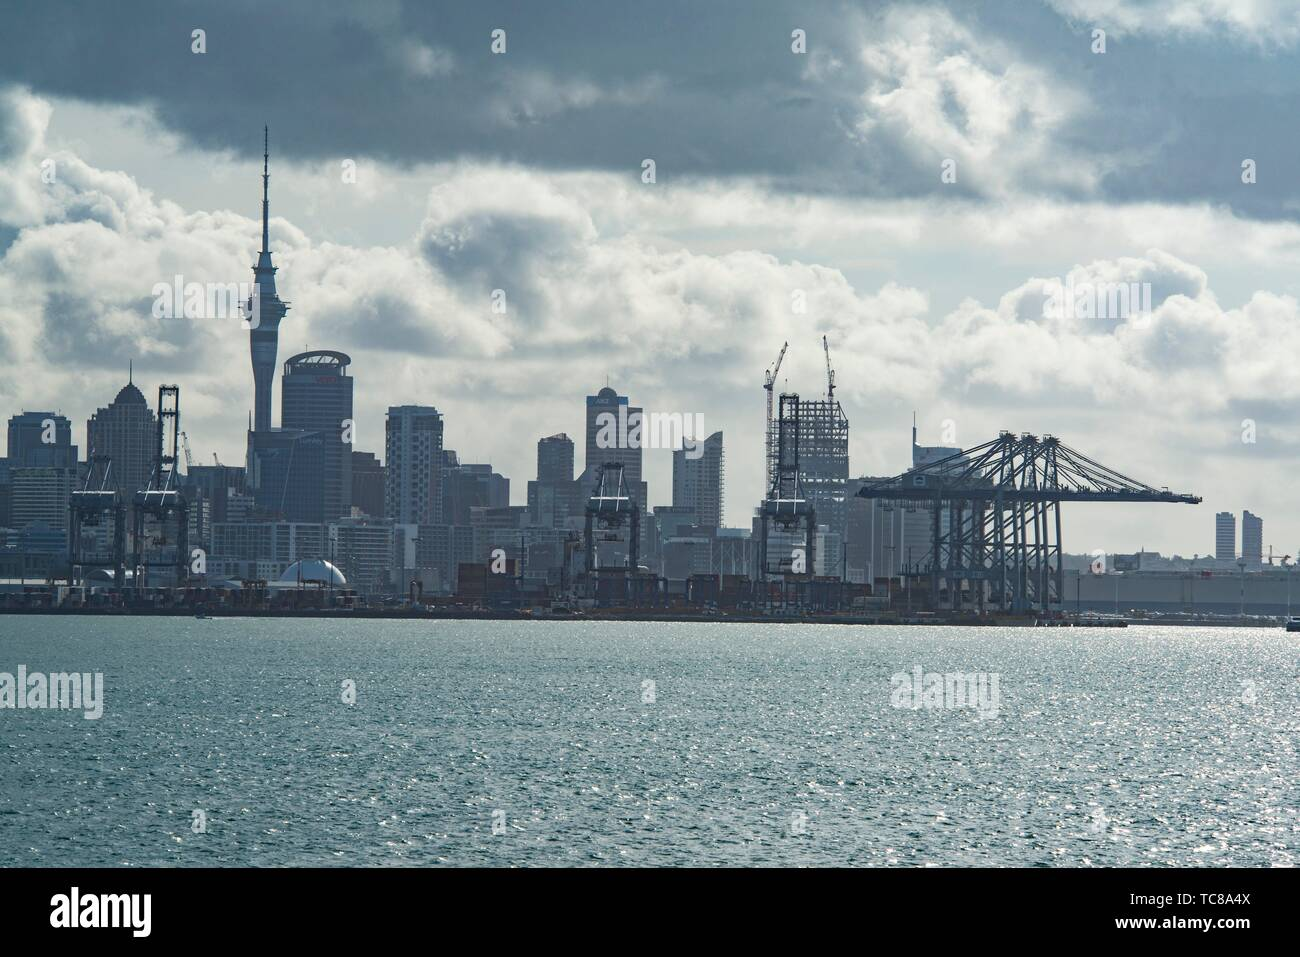 Auckland skyline and harbour, Hauraki Gulf, New Zealand. - Stock Image